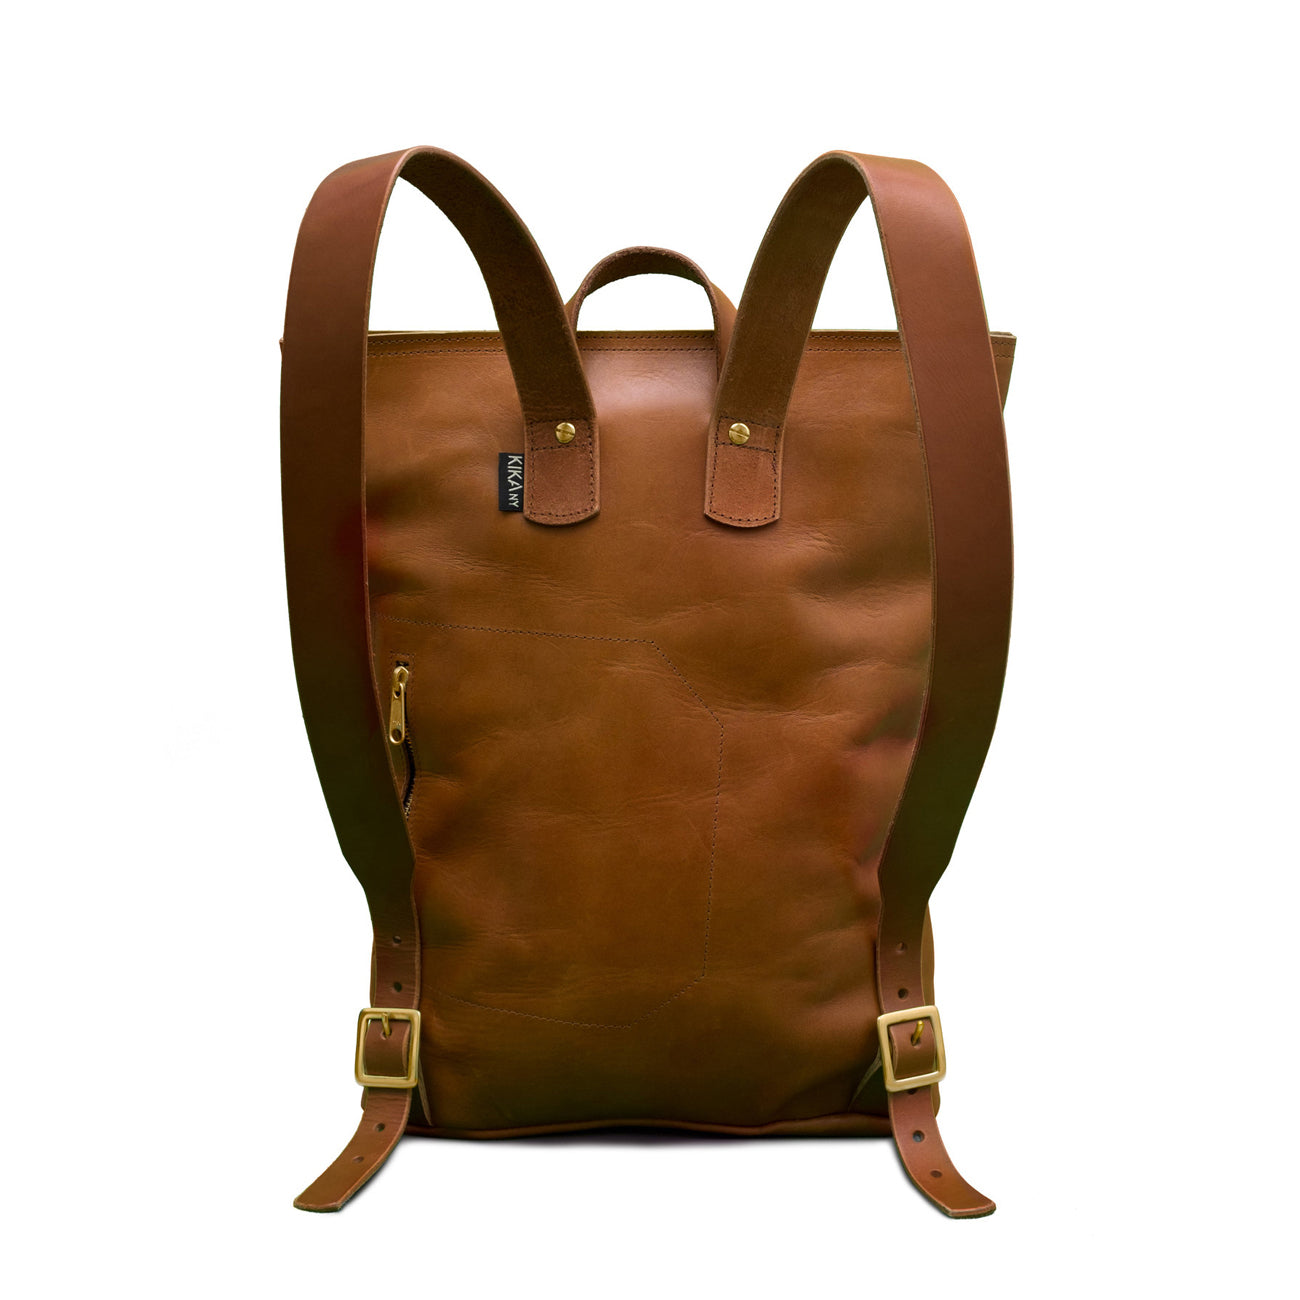 harvest backpack in tan